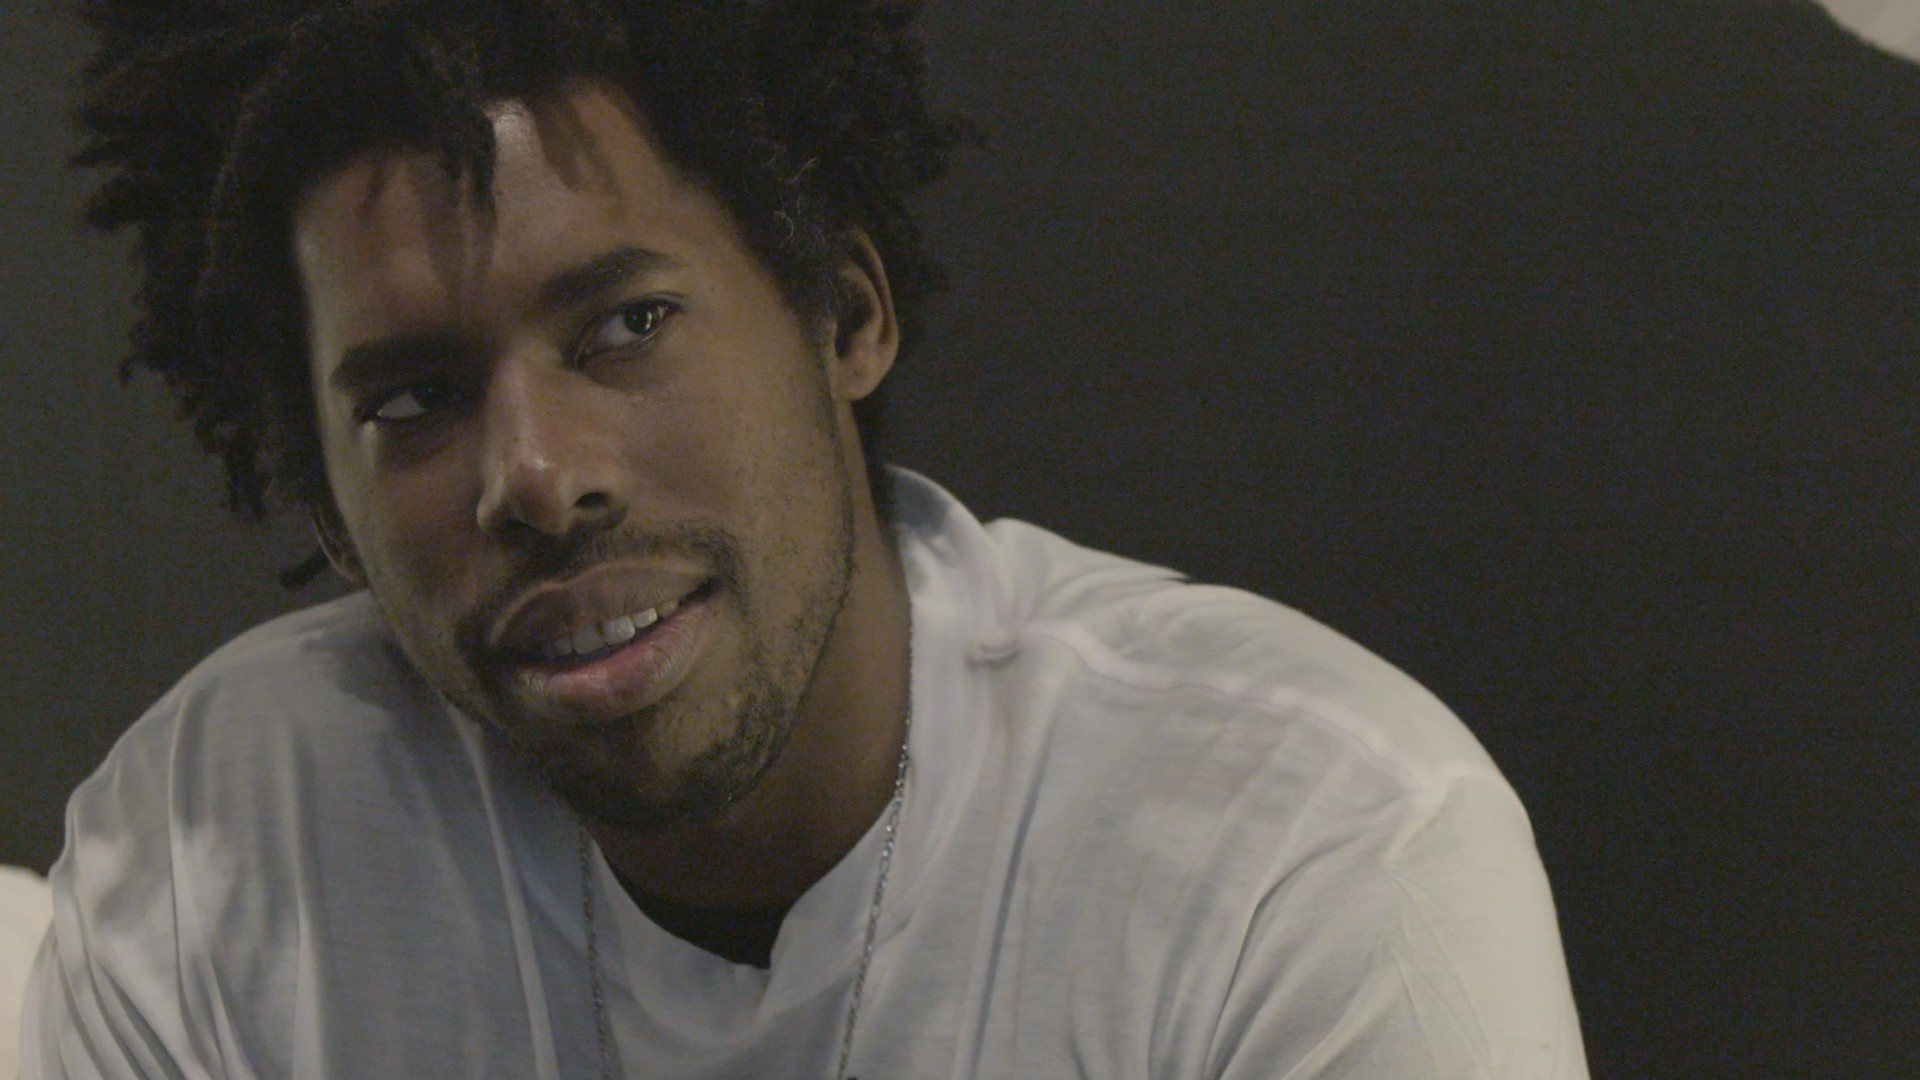 Walkouts at Sundance: Flying Lotus Takes Us Behind the Scenes of His Controversial Film